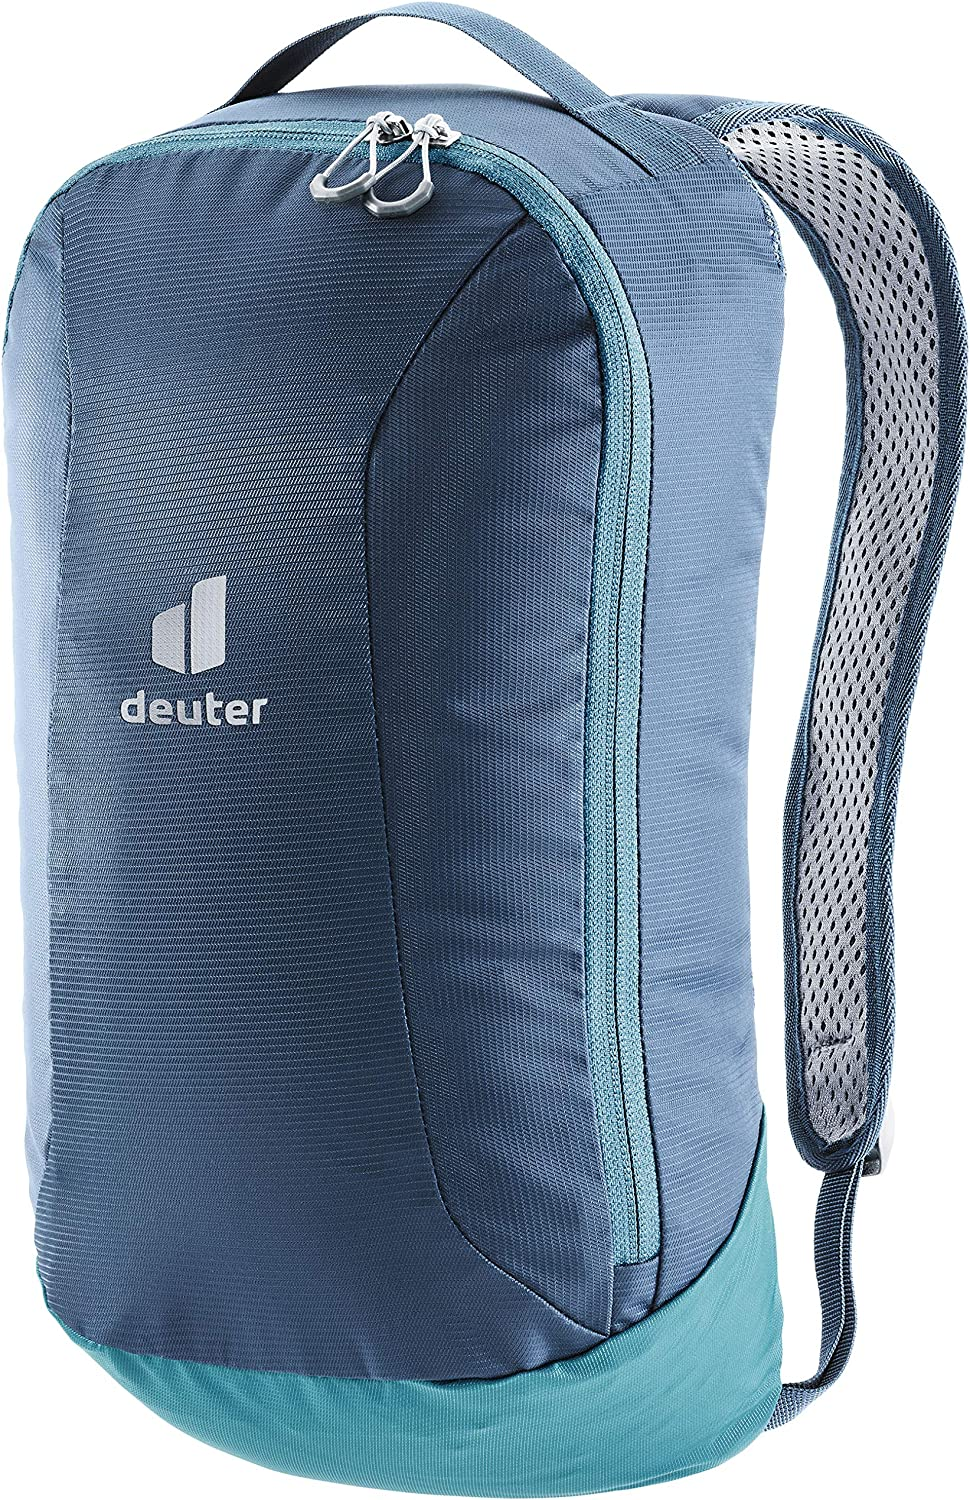 100% guaranteed Deuter Kid Comfort Pro Child Carrier and ...